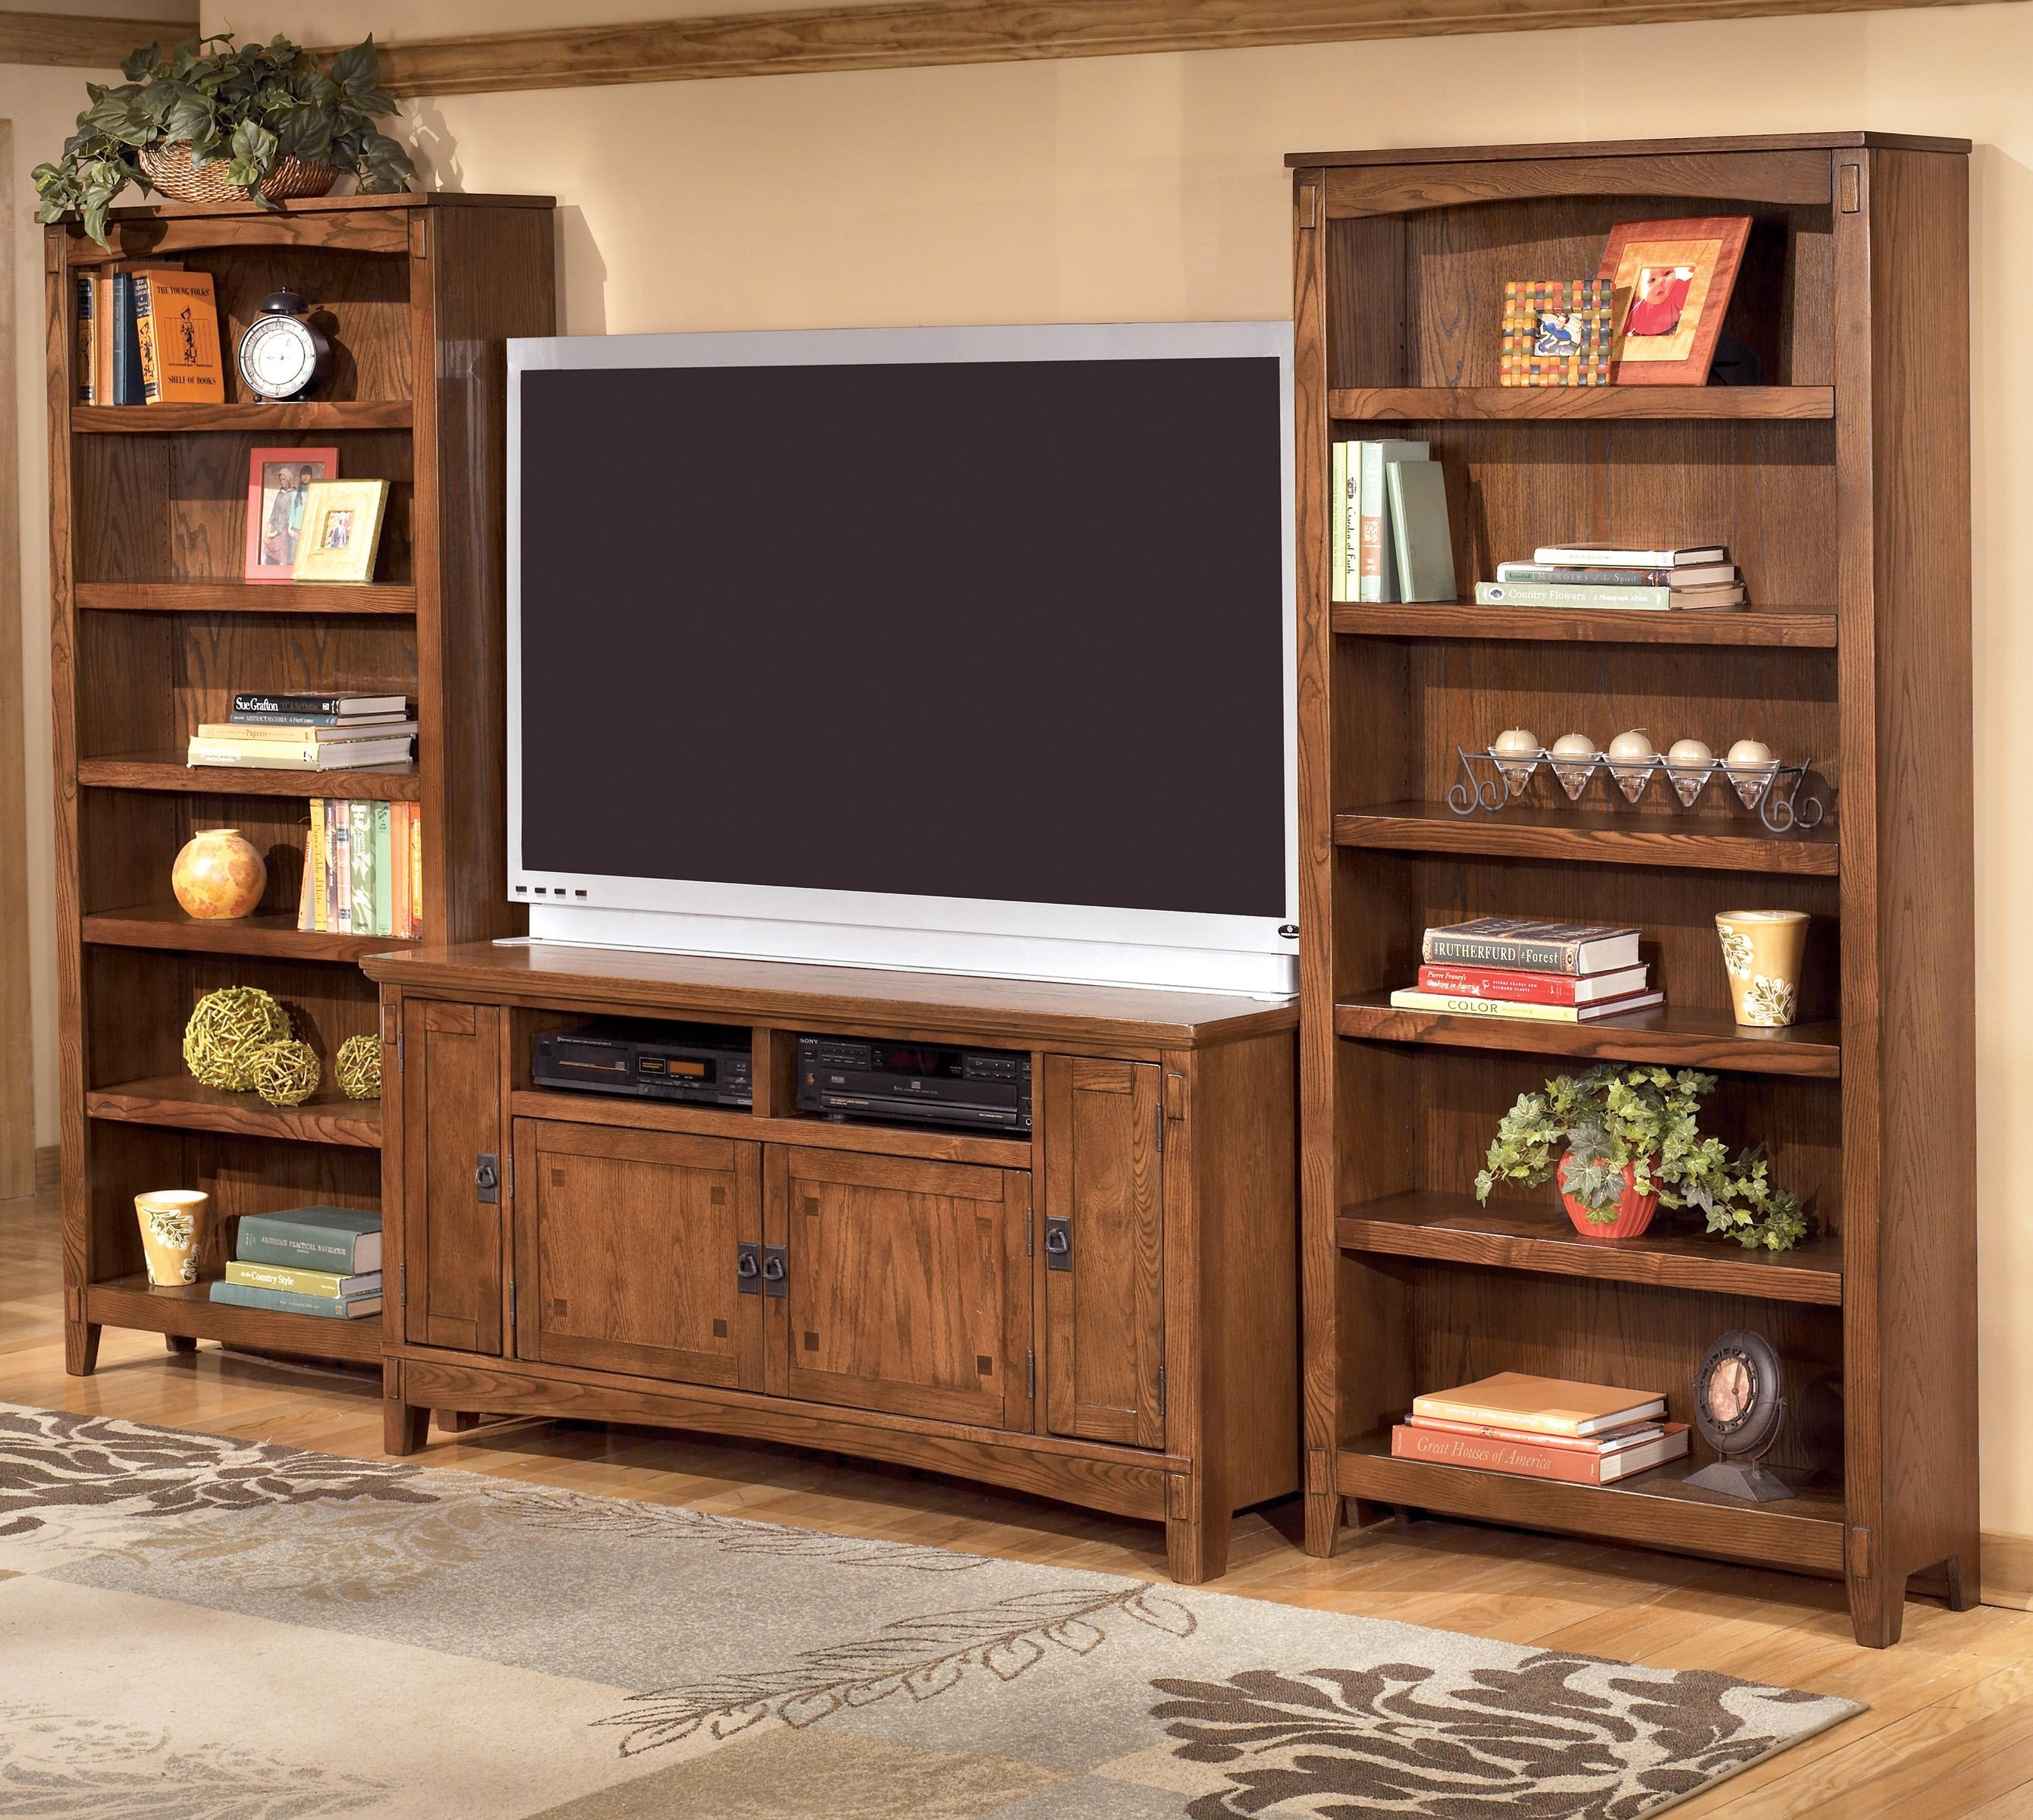 Ashley Furniture Cross Island 60 Inch Tv Stand 2 Large Bookcases Intended For Tv Bookcases (View 10 of 15)